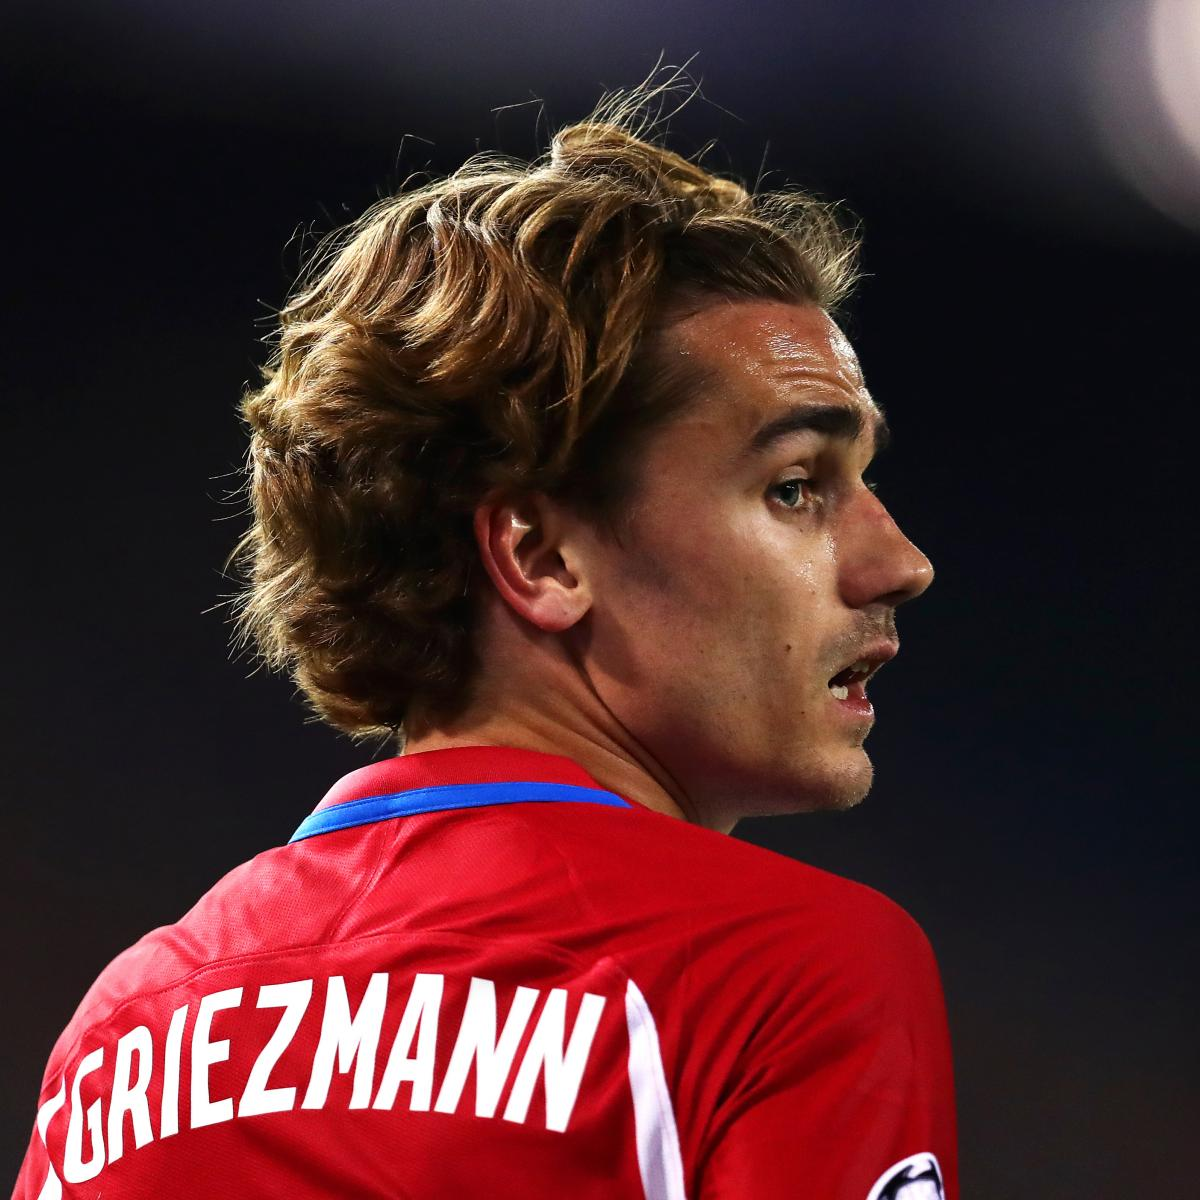 Brazilian Star Moves From Psg: Antoine Griezmann Denies Potential PSG Move, Says He Wants